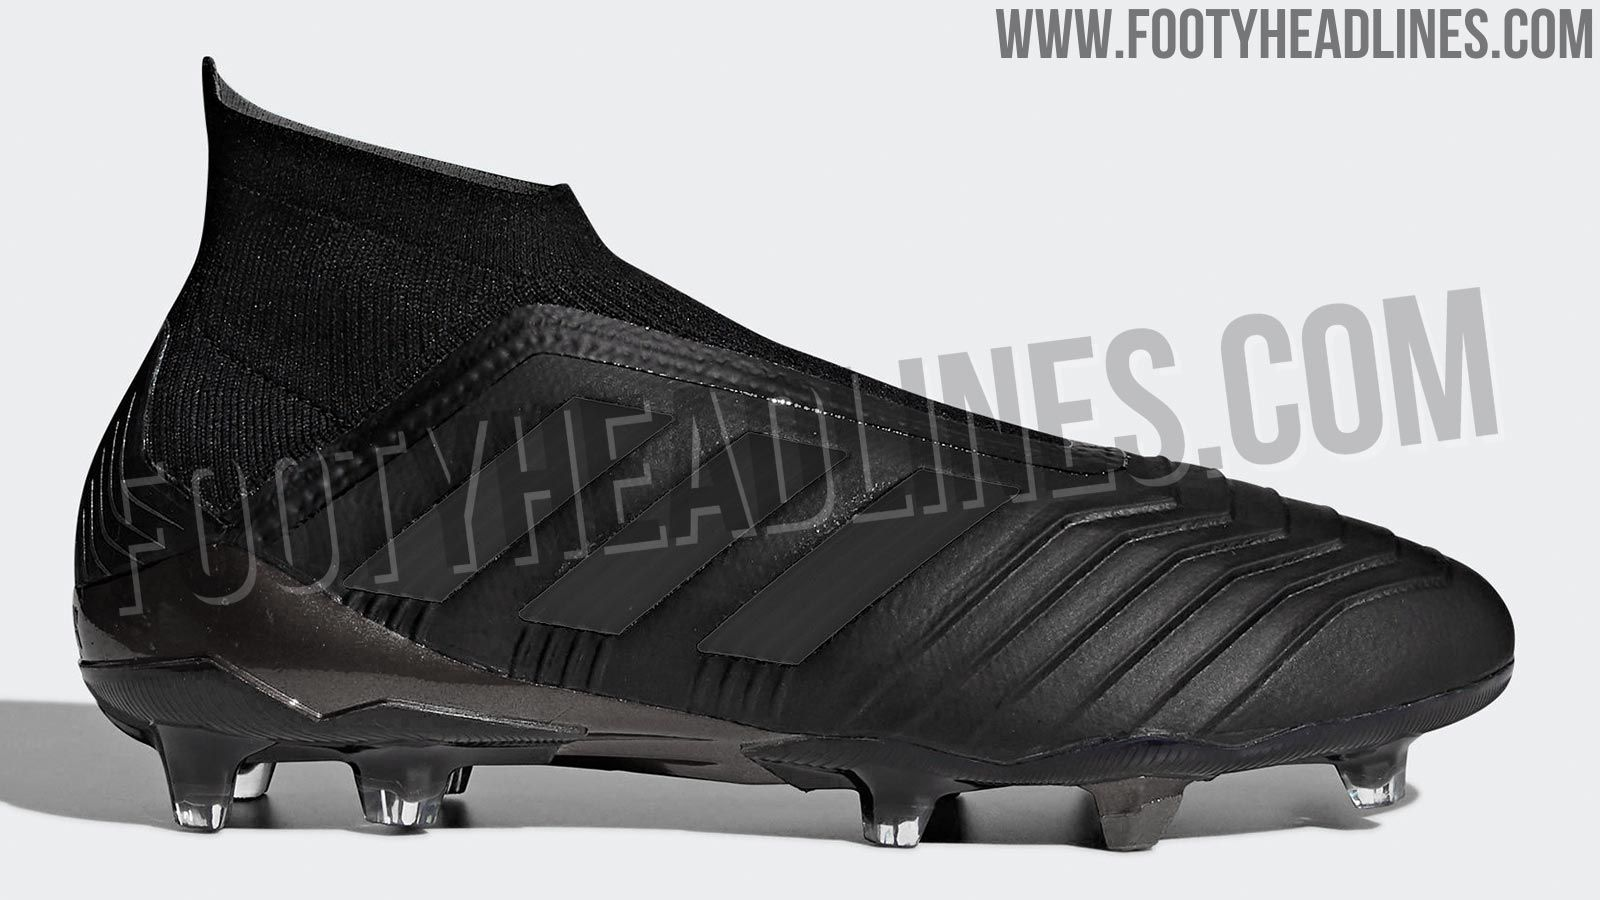 2f99b8cd7 The Adidas Predator 18+ Nitecrawler football boots introduce a stealth look  to the latest iteration of the iconic 3 Stripes model